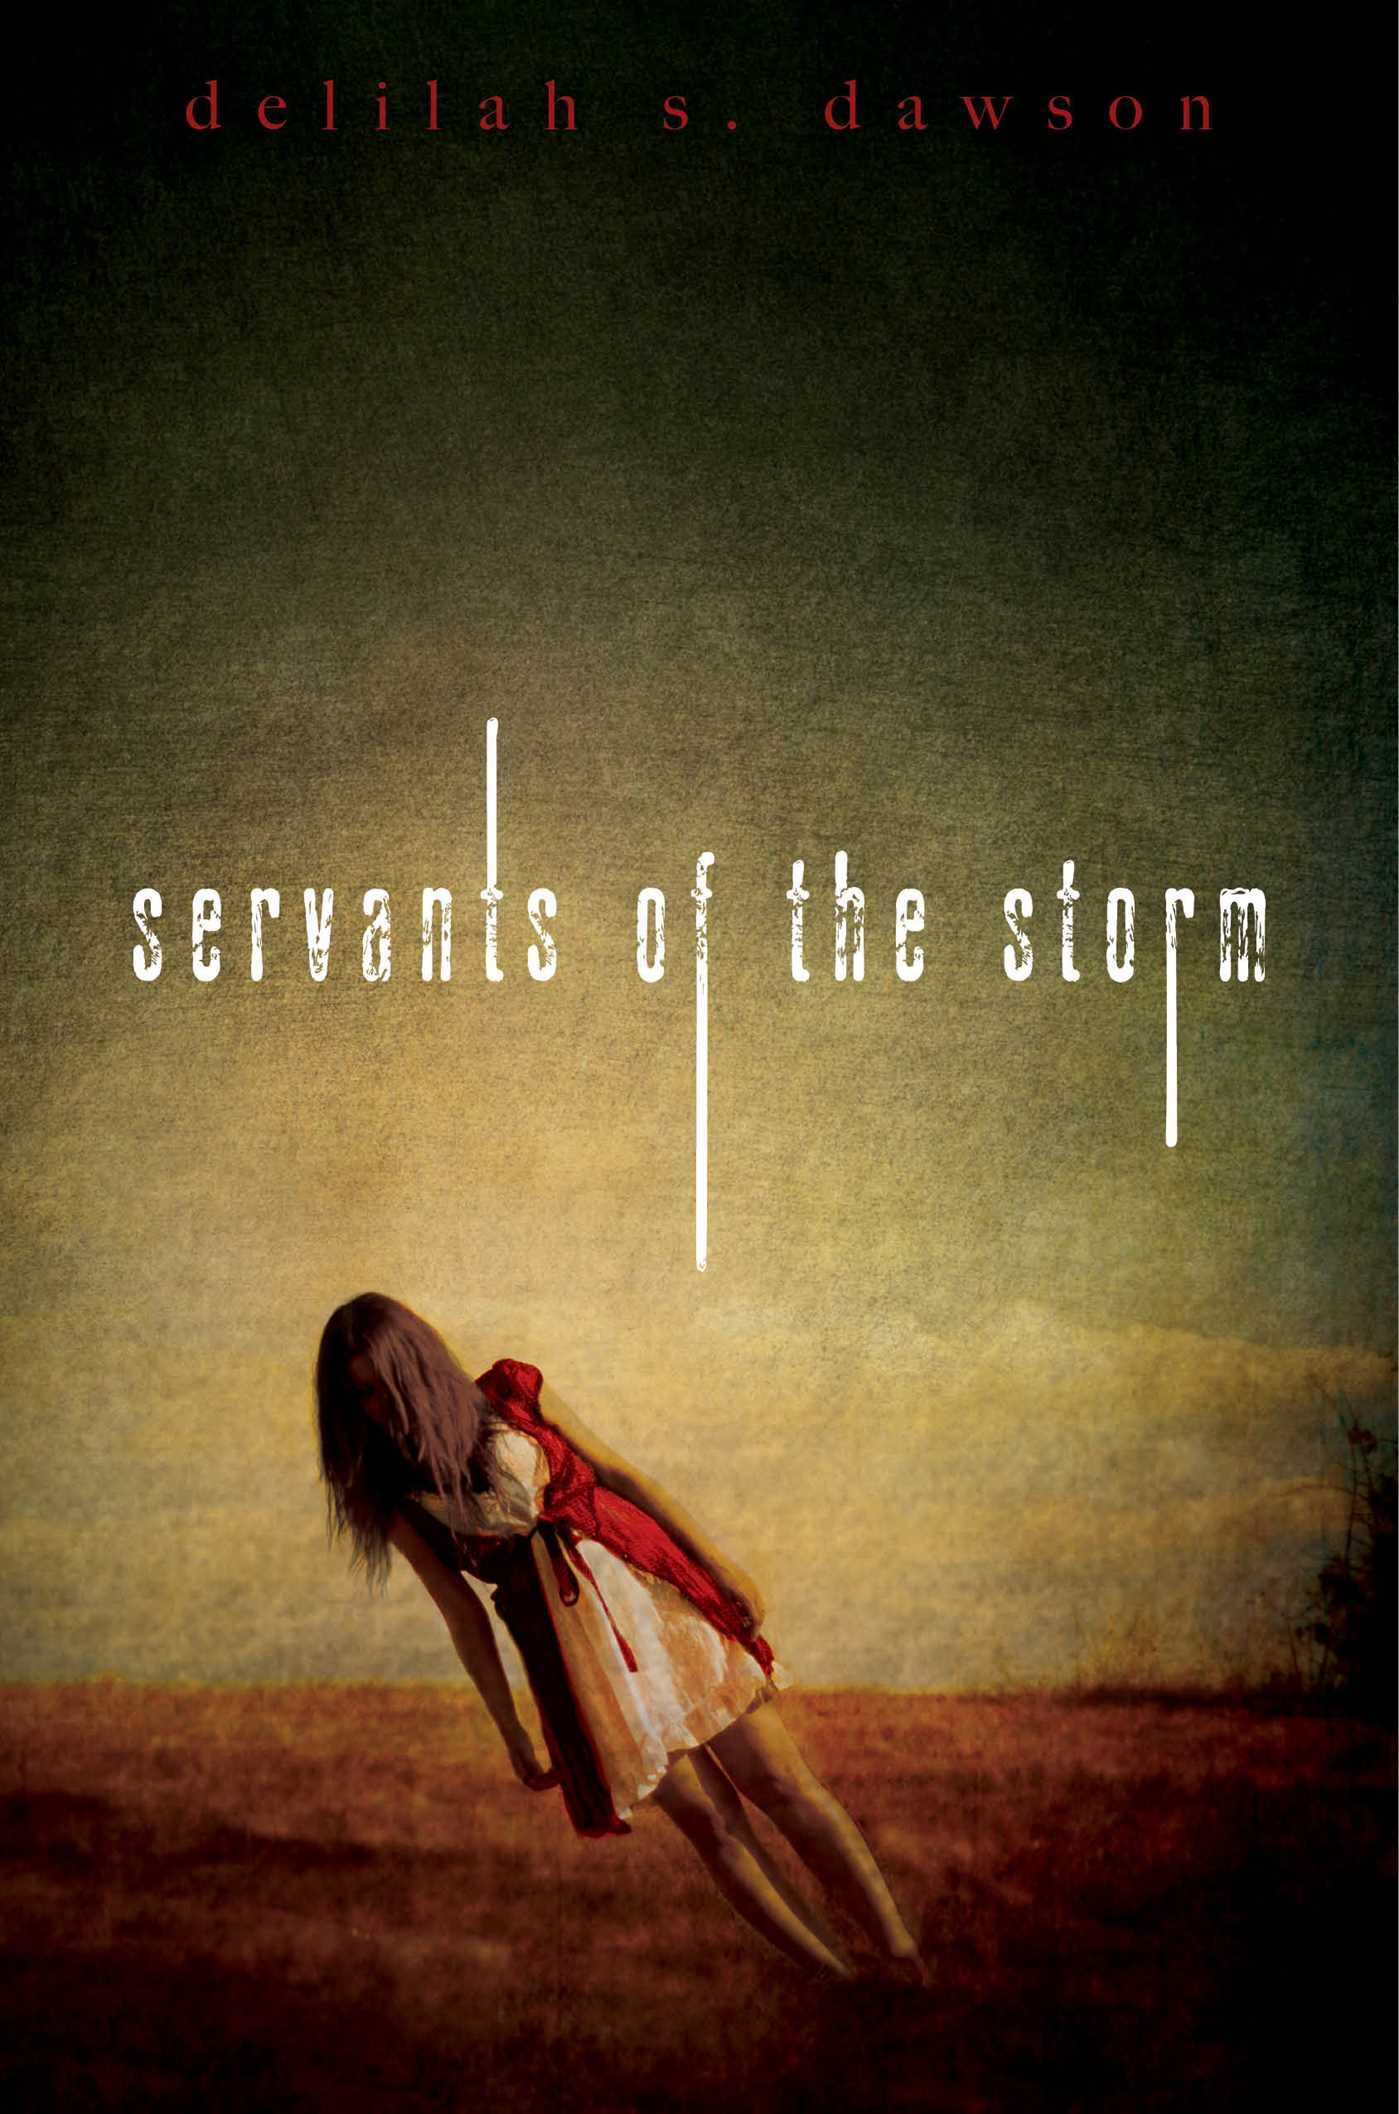 th_b_dawson_servantsofthestorm